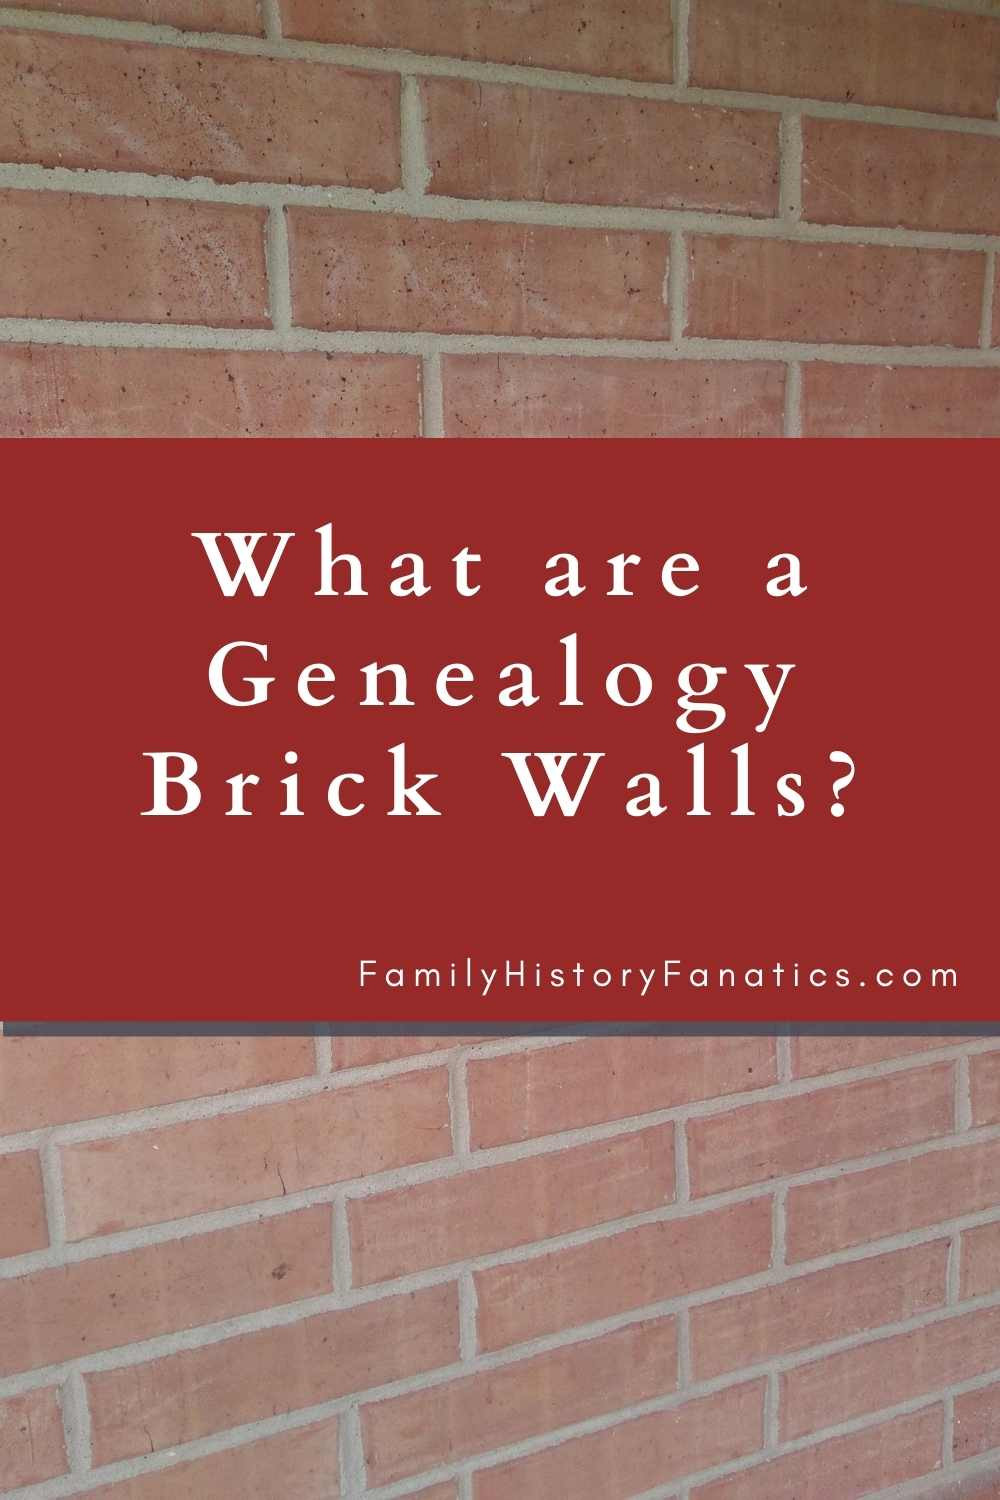 Brick wall with question What are genealogy brick walls?